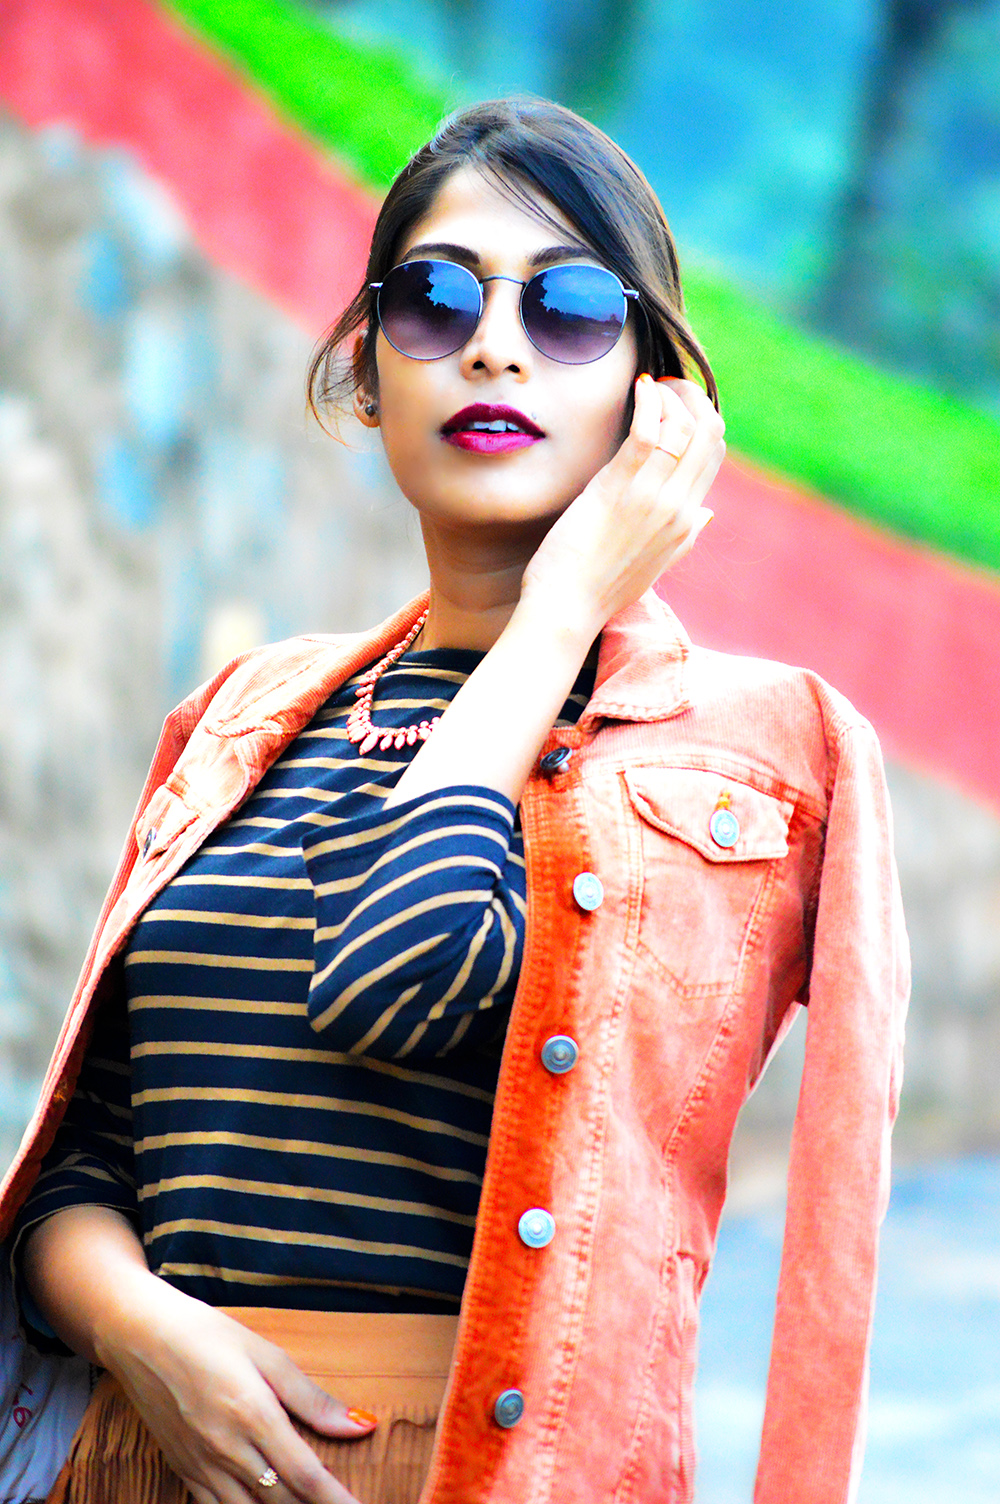 fashion, style, street style, street fashion, sarmistha goswami, style over coffee, pankaj jyoti barua, fashion blogger, indian fashion blogger, summer fashion, indian street style photography, fringe skirt, corduroy jacket, striped tee, lenskart sunglasses, Summer Street Style-2